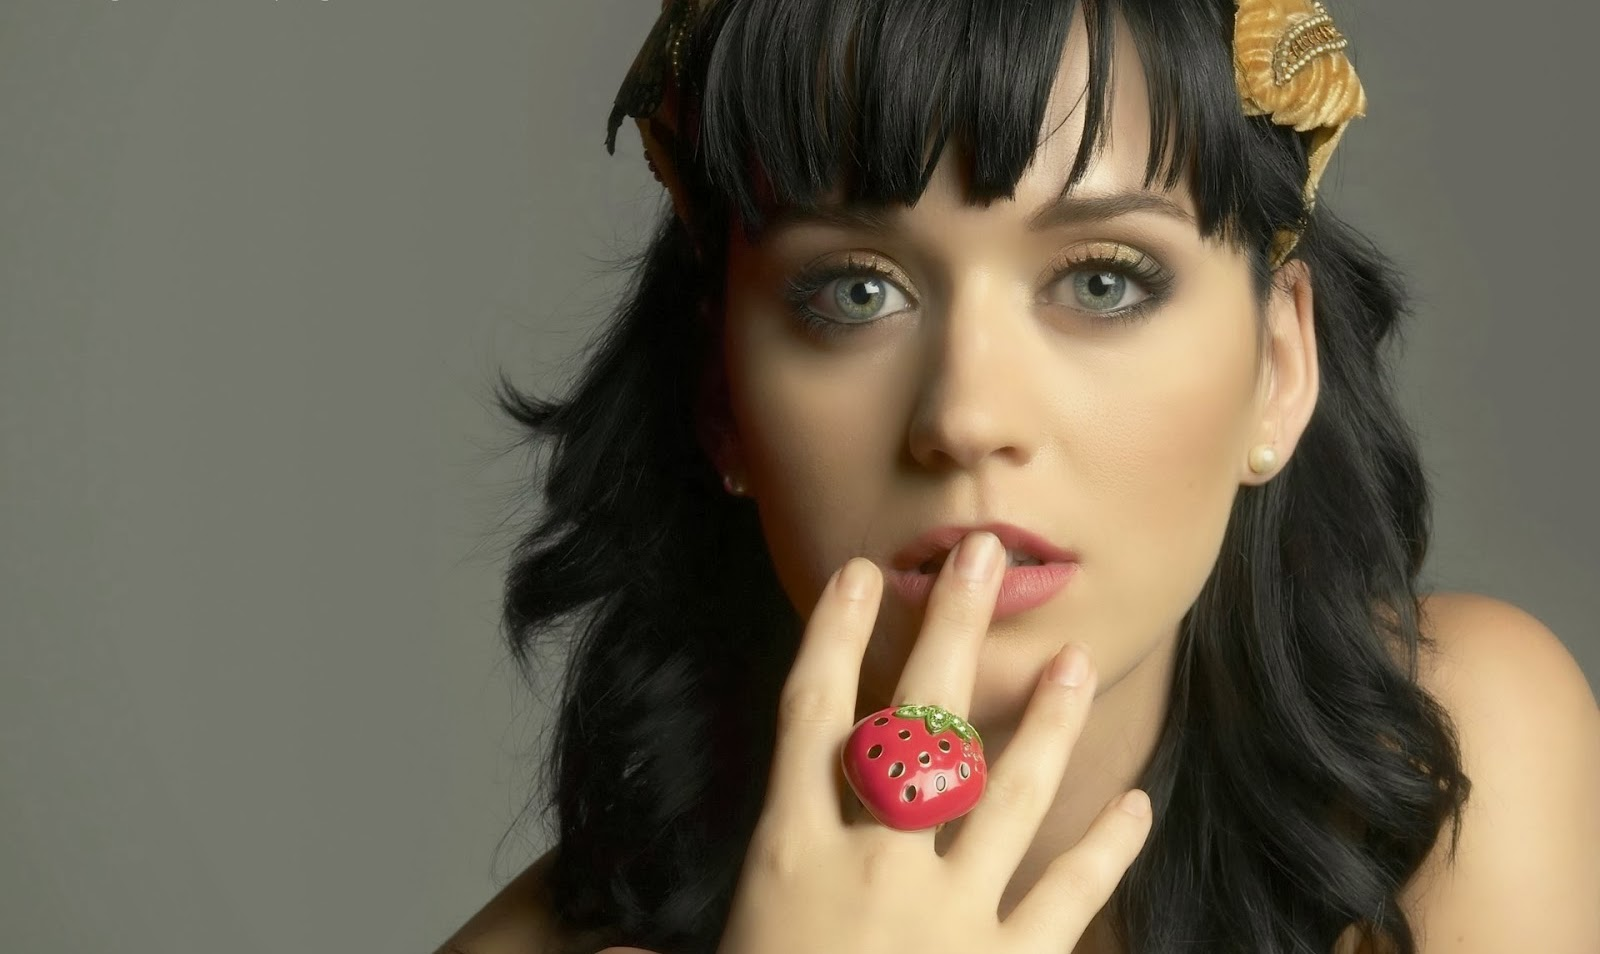 celebrity, katy perry wallpaper, katy perry hairstyles, background pictures,